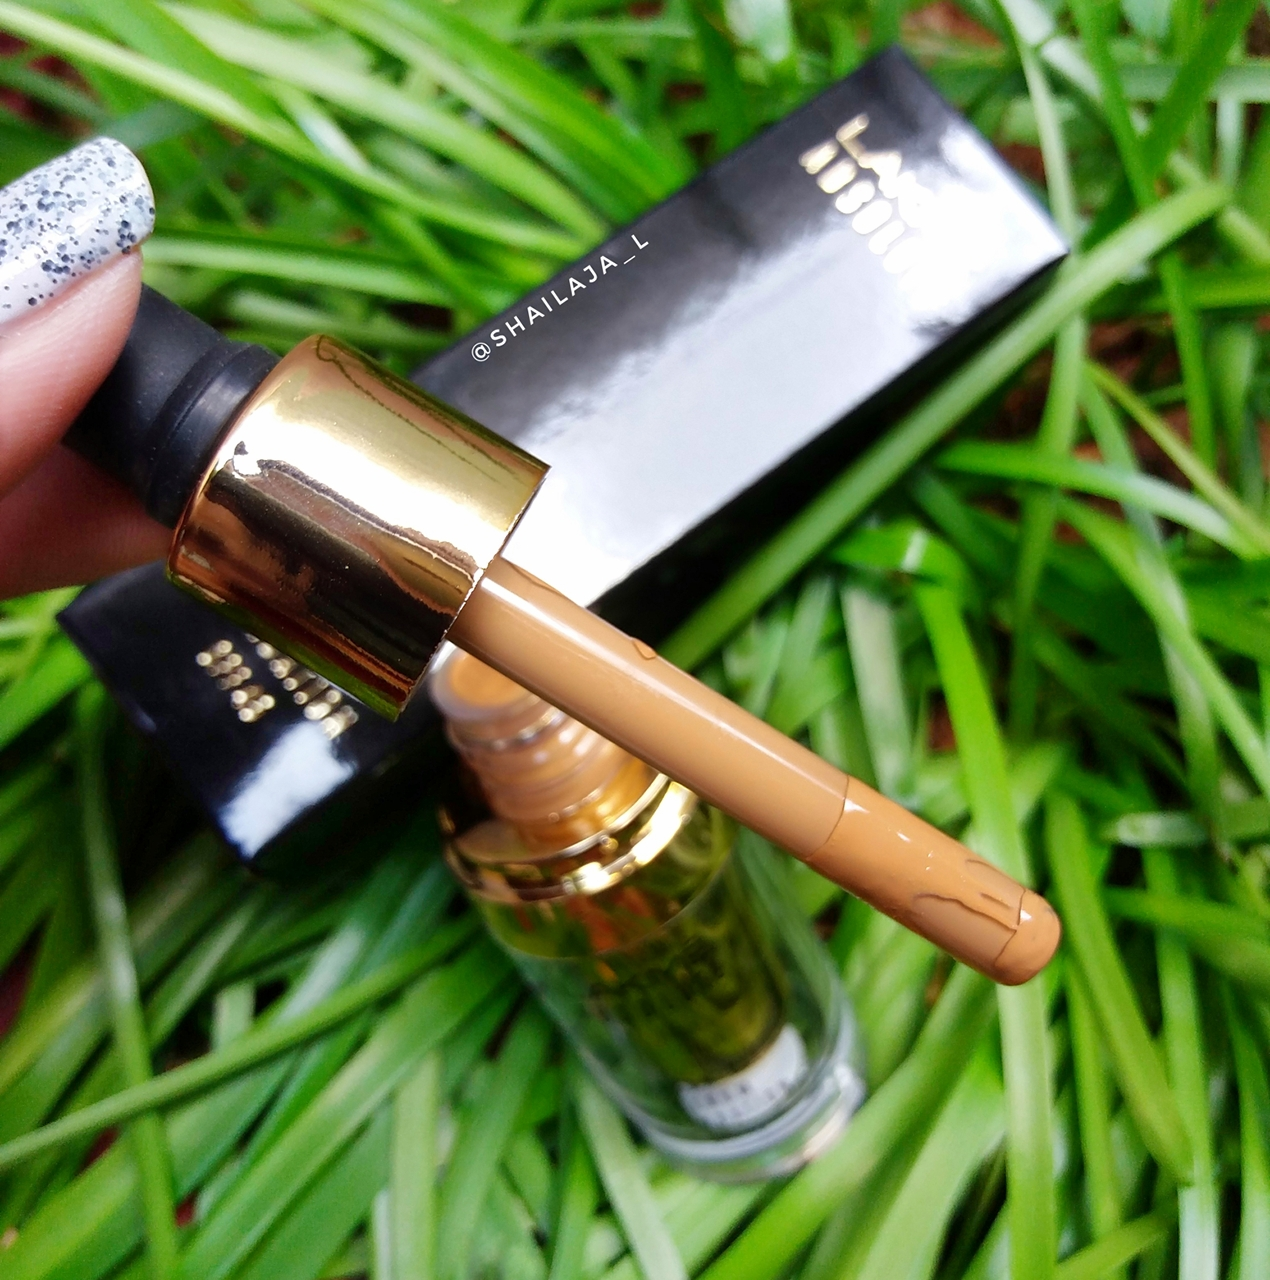 LAKME ABSOLUTE ARGAN OIL SERUM FOUNDATION REVIEW 4